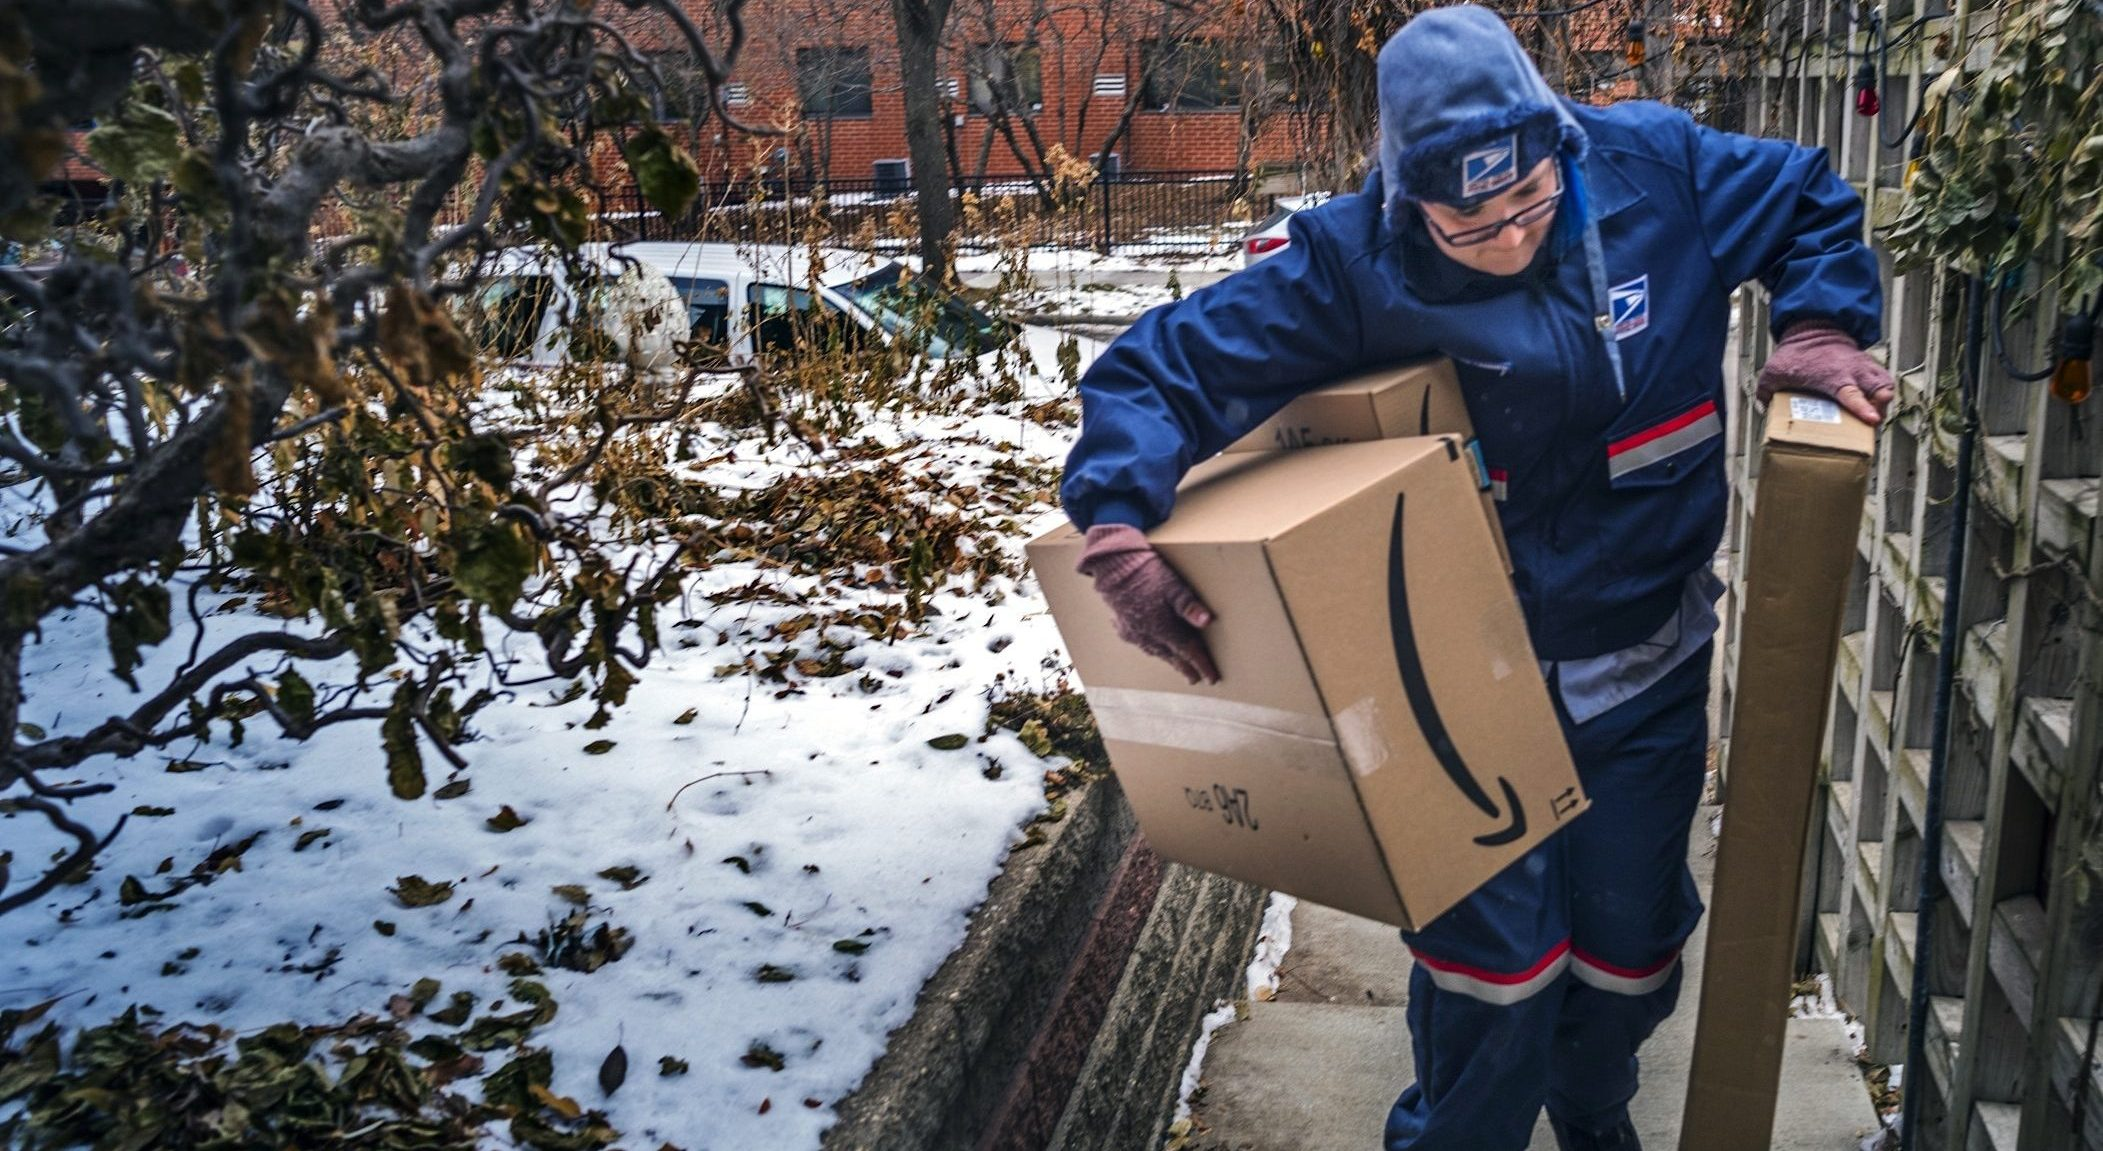 USPS delivery worker